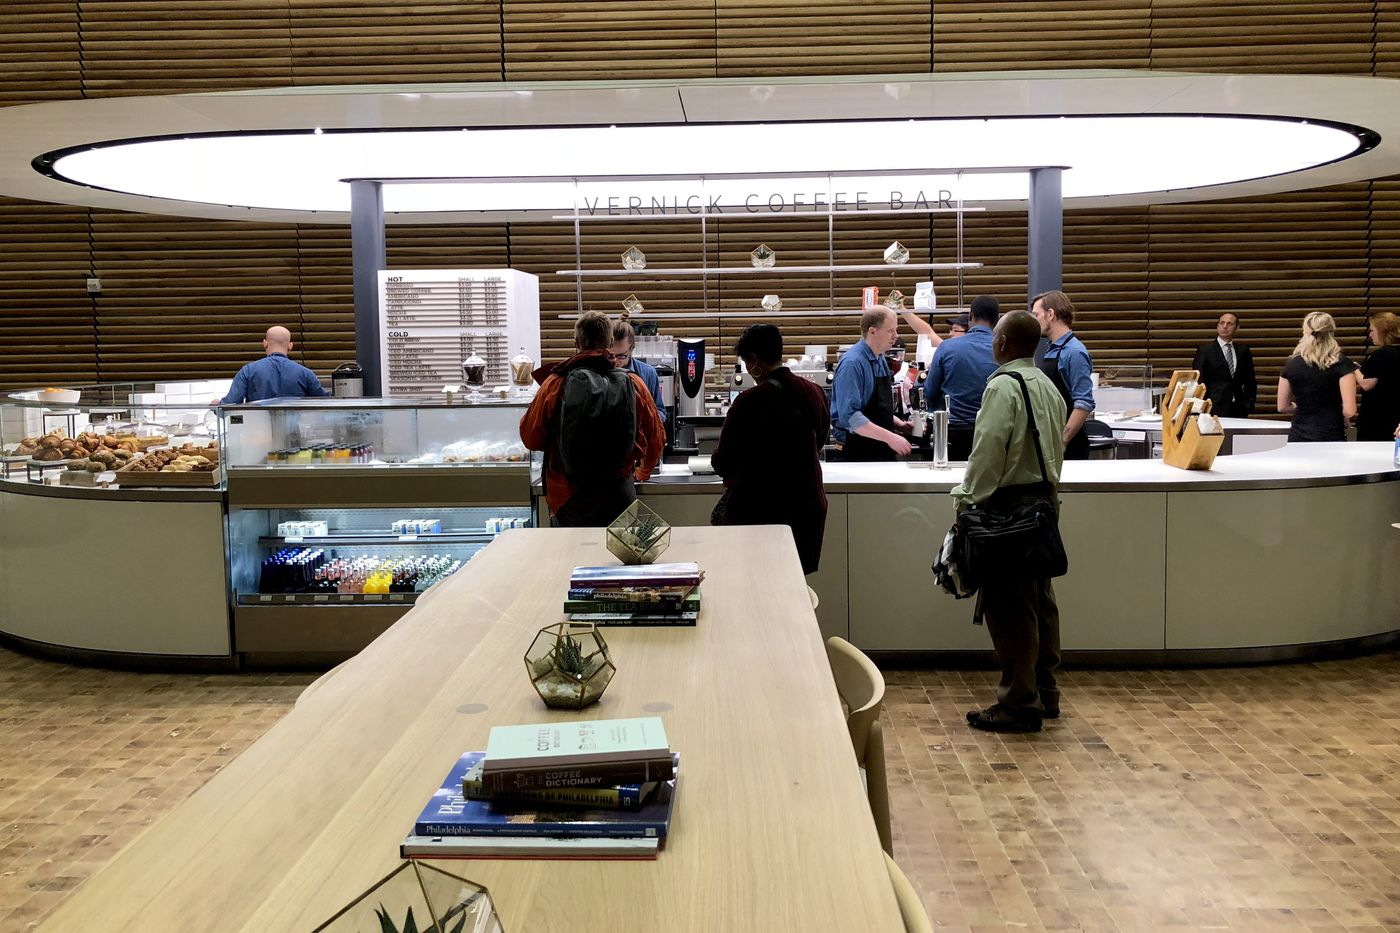 Early look at Vernick Coffee Bar at new Comcast tower